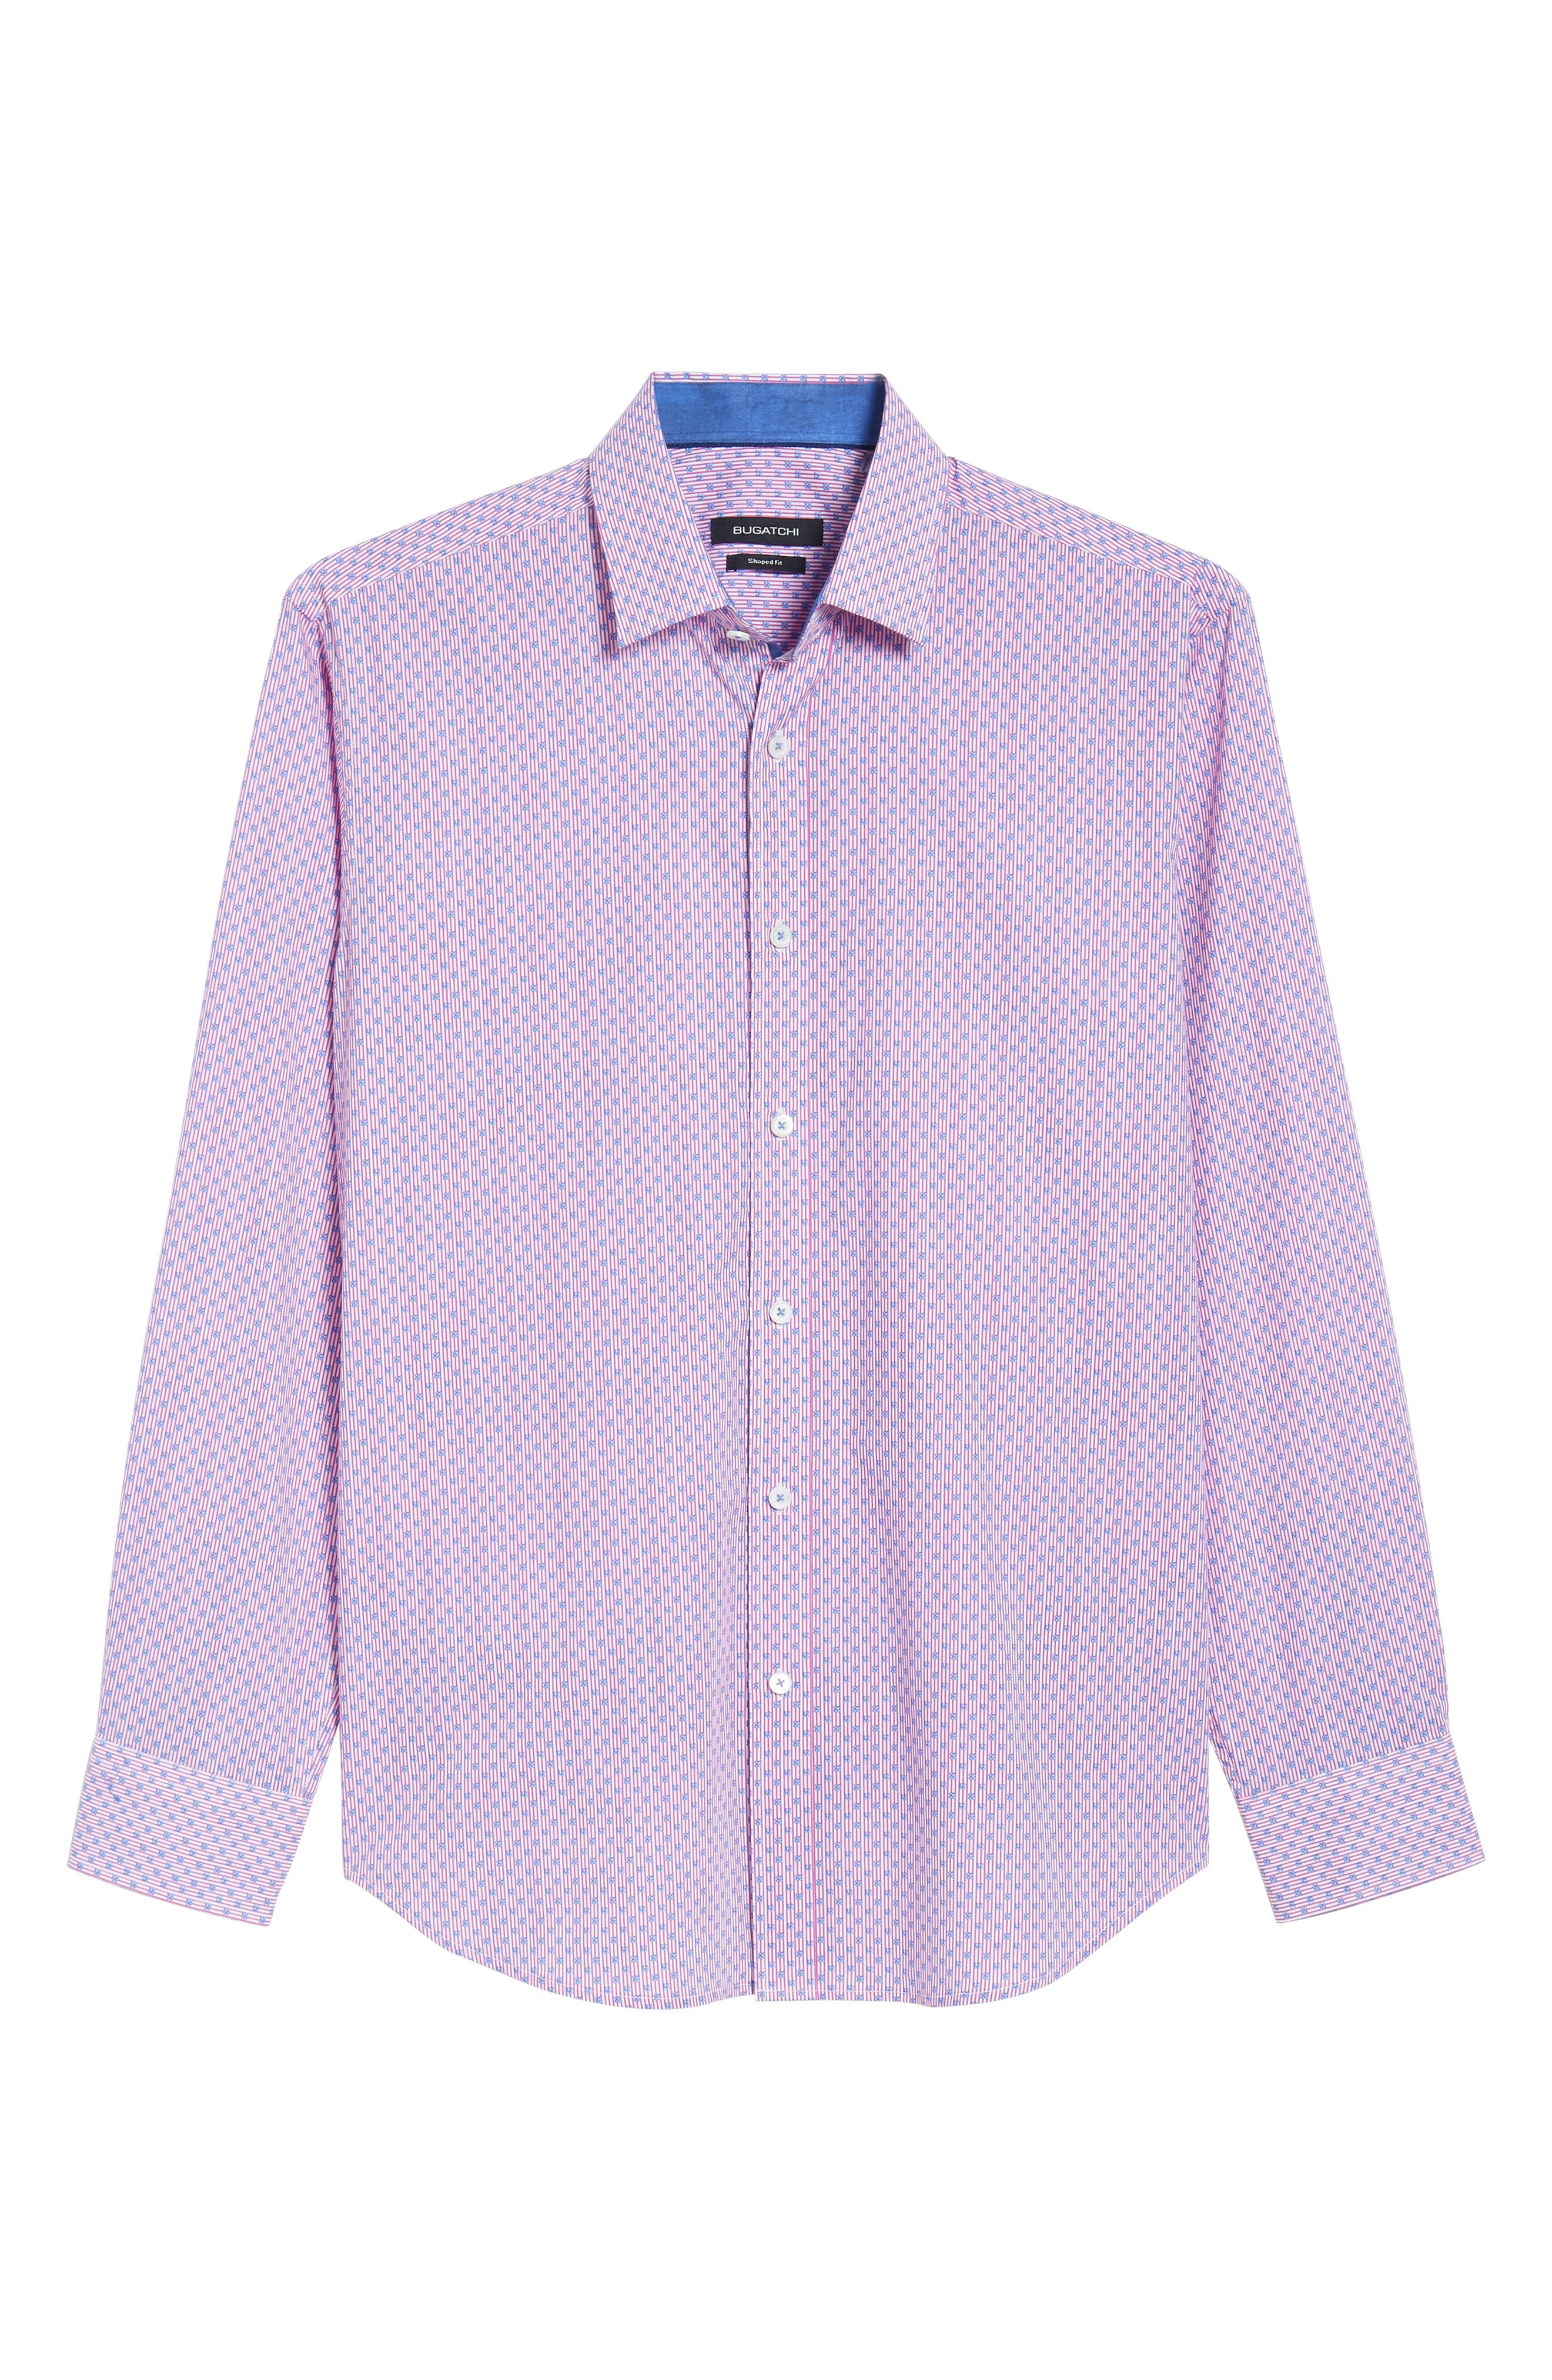 Flowers & Pinstripes Shaped Fit Sport Shirt,                             Alternate thumbnail 6, color,                             682